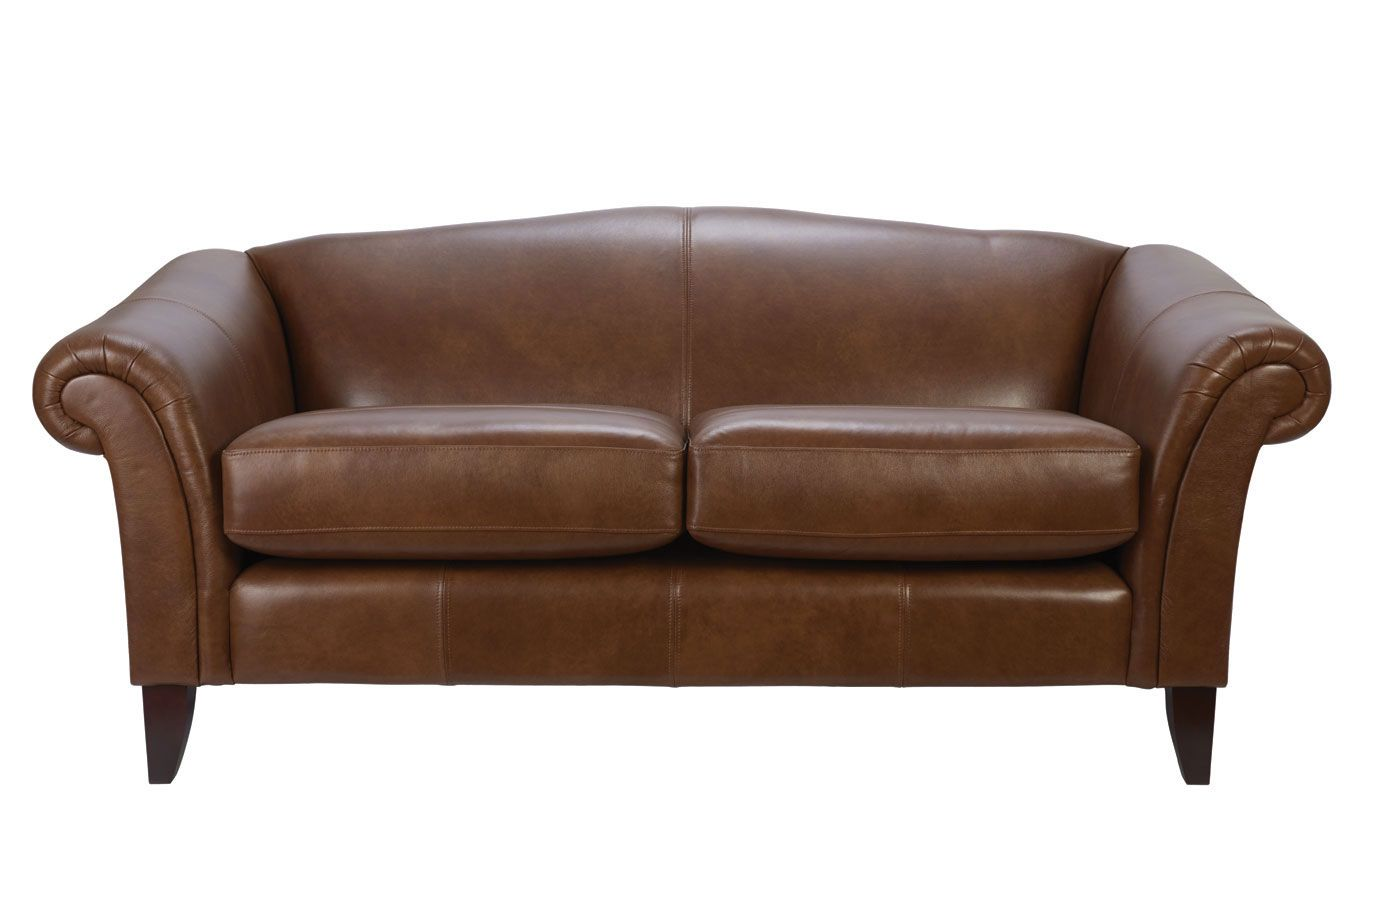 ashley harvest sleeper sofa store reviews embleton leather 2 seater laura made to